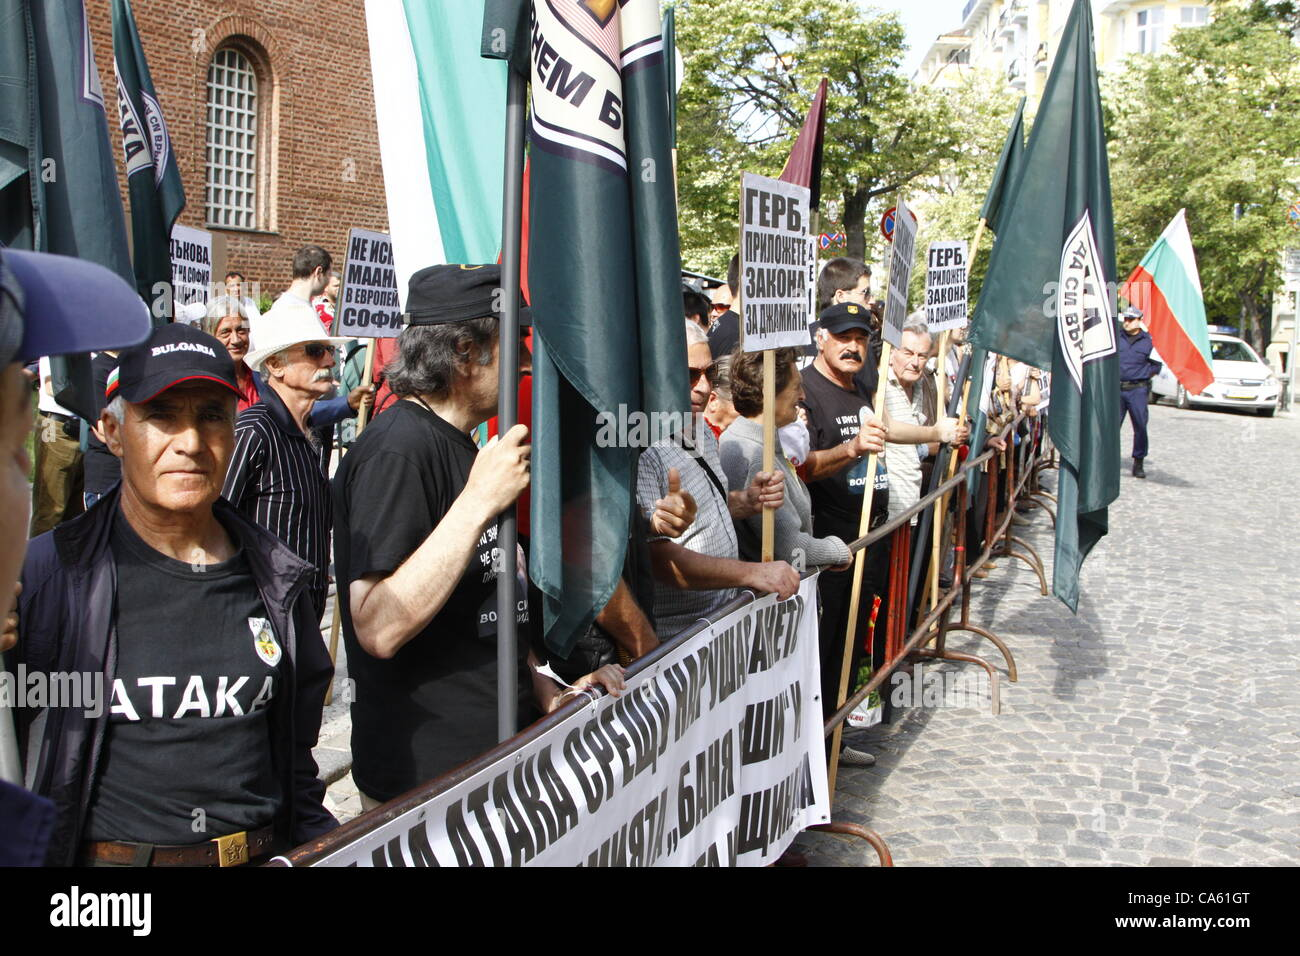 About one hundred supporters of Bulgaria's ultra-right party ATAKA (Attack) rallying against 'too noisy' - Stock Image